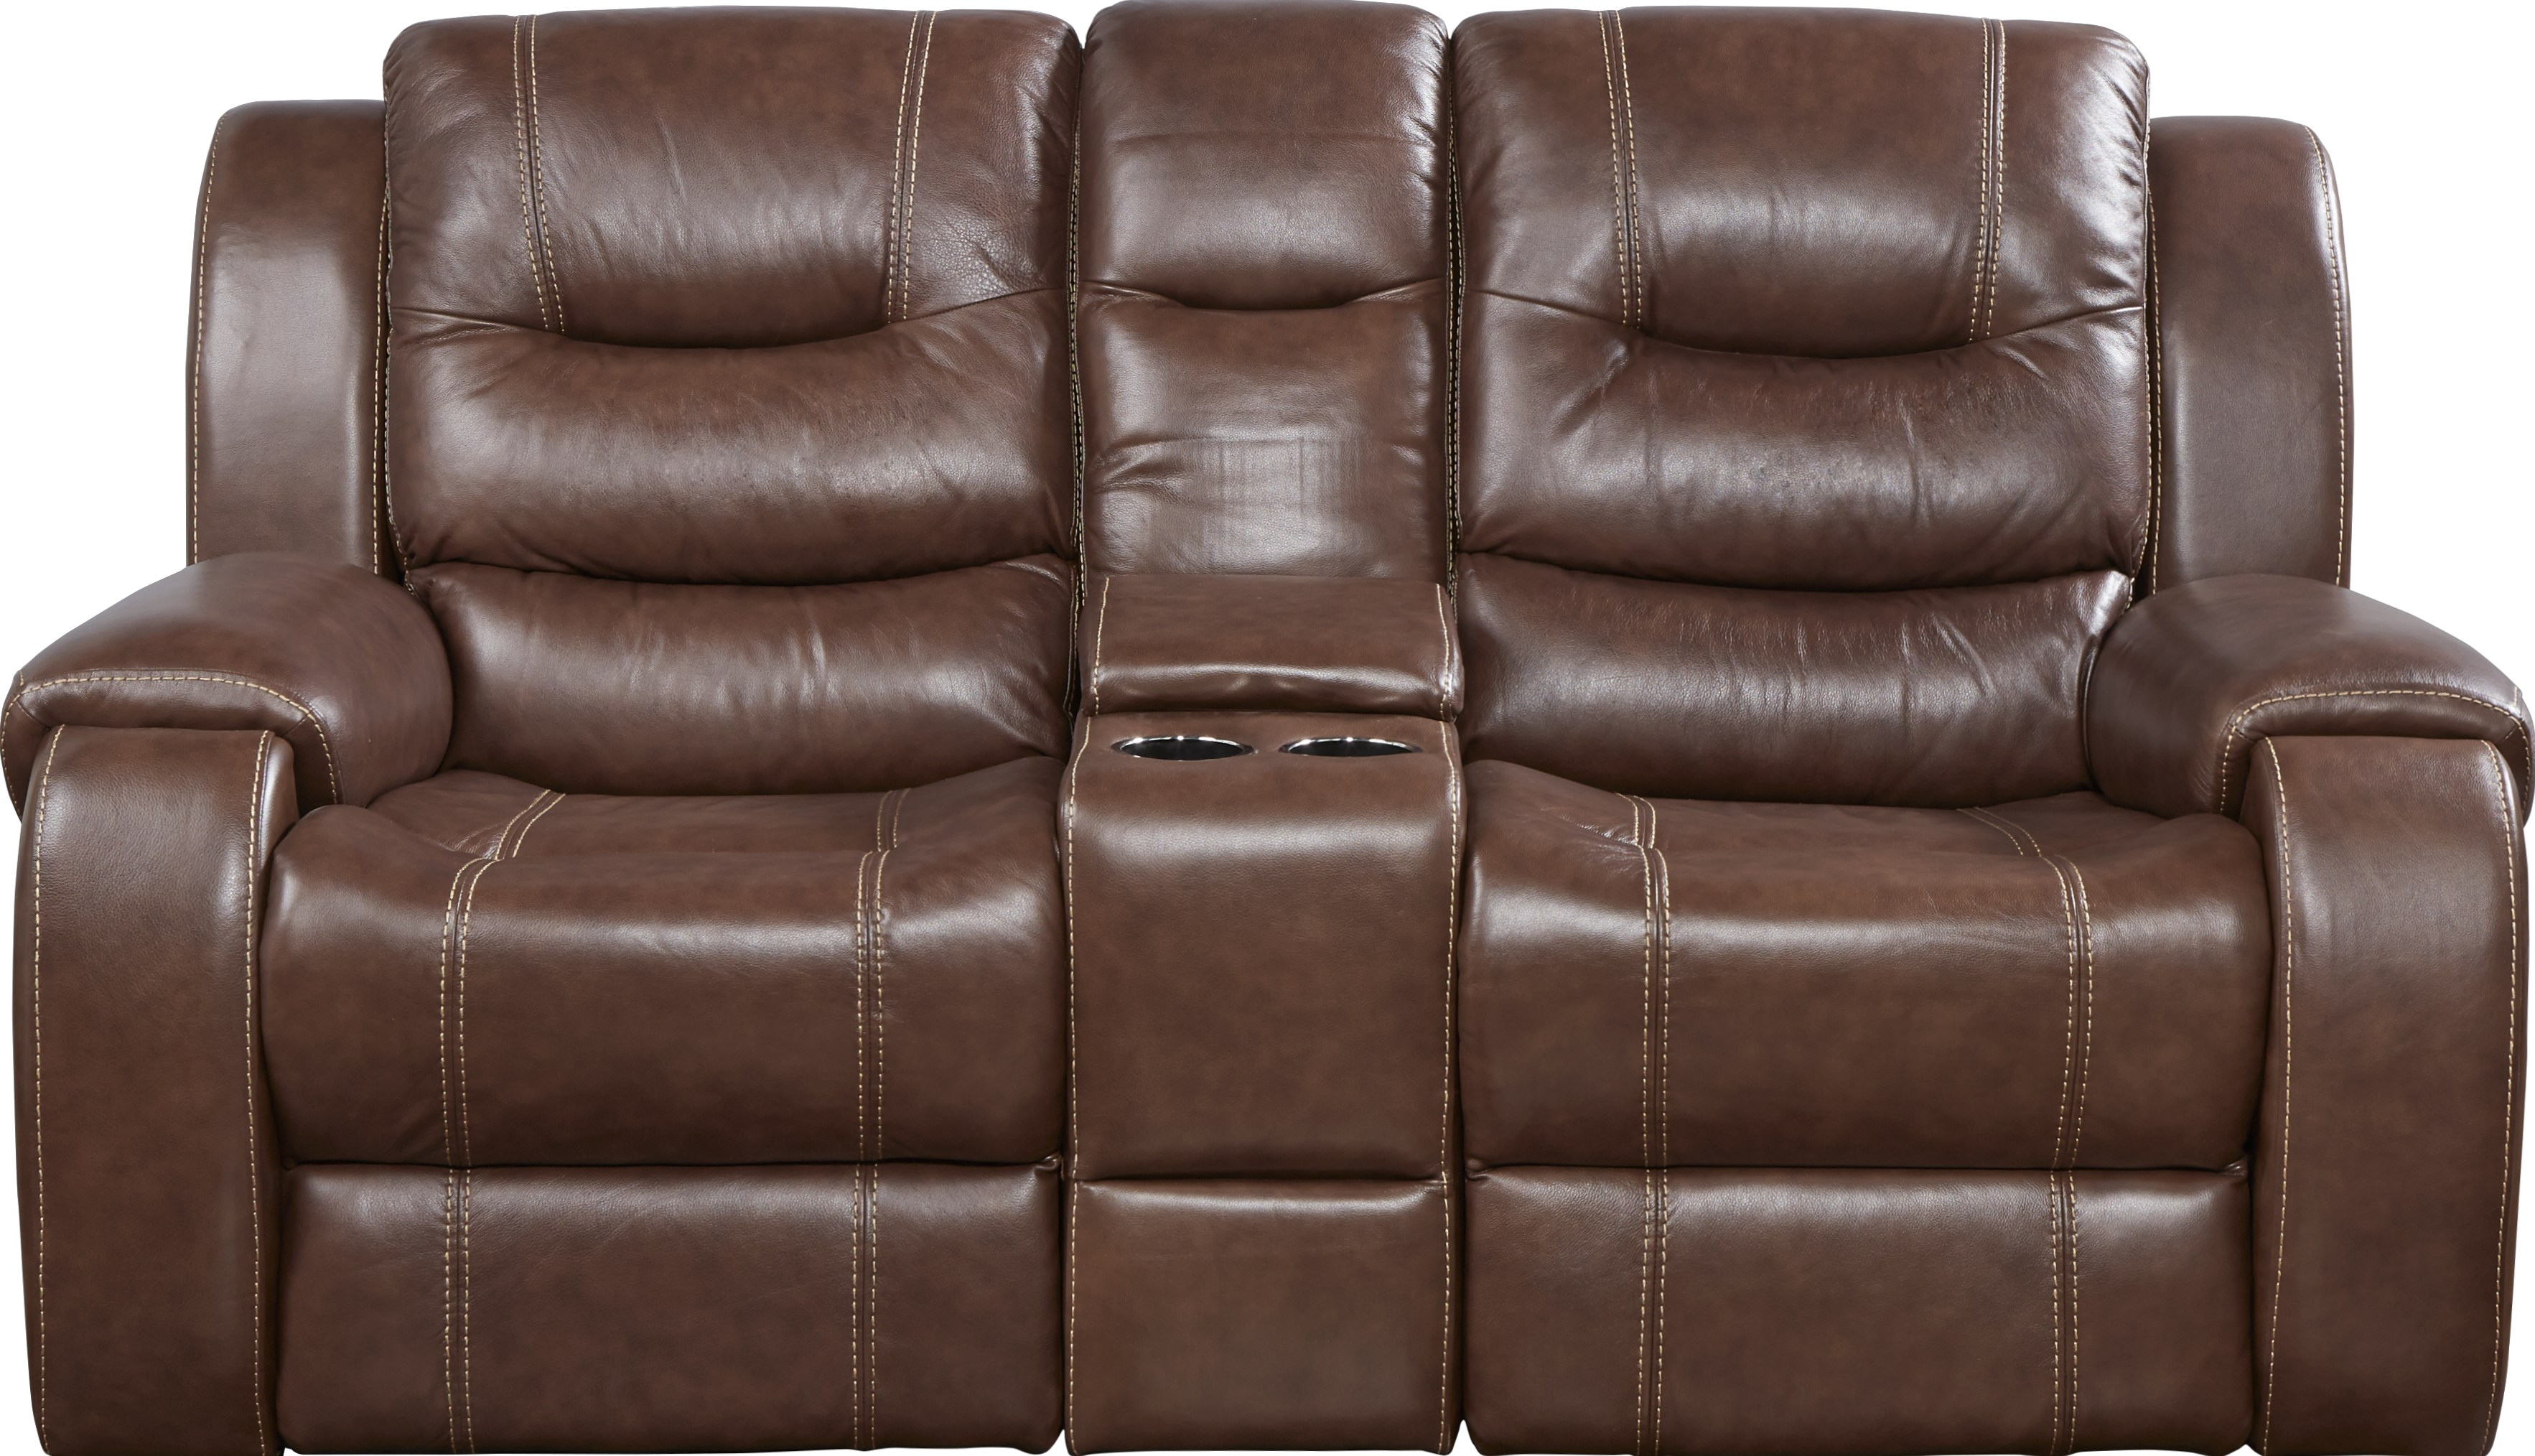 Veneto Brown Leather Reclining Console Loveseat - Leather Loveseats (Brown)